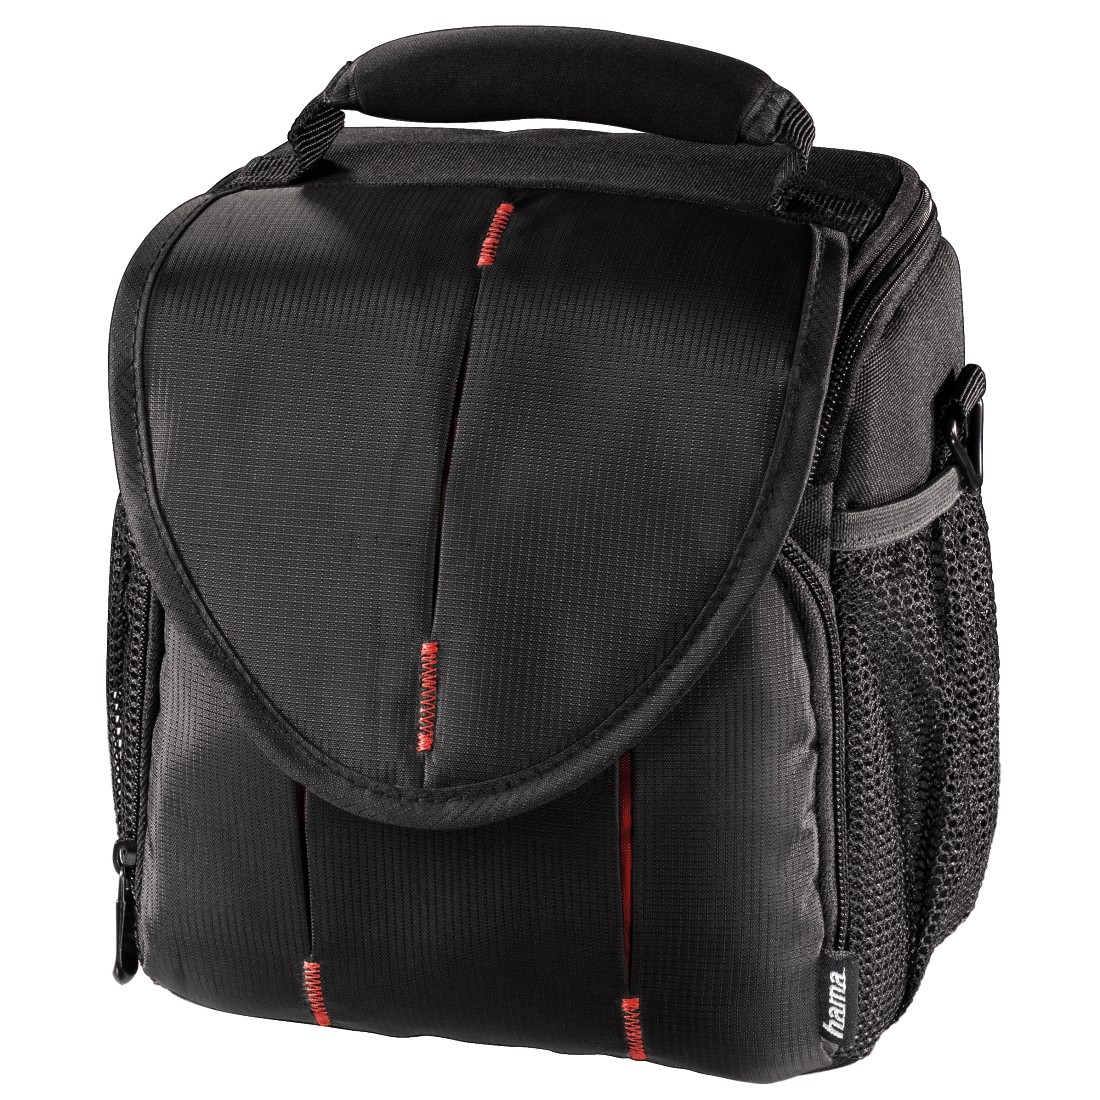 abx High-Res Image - Hama, Canberra 120 Camera Bag, black/red